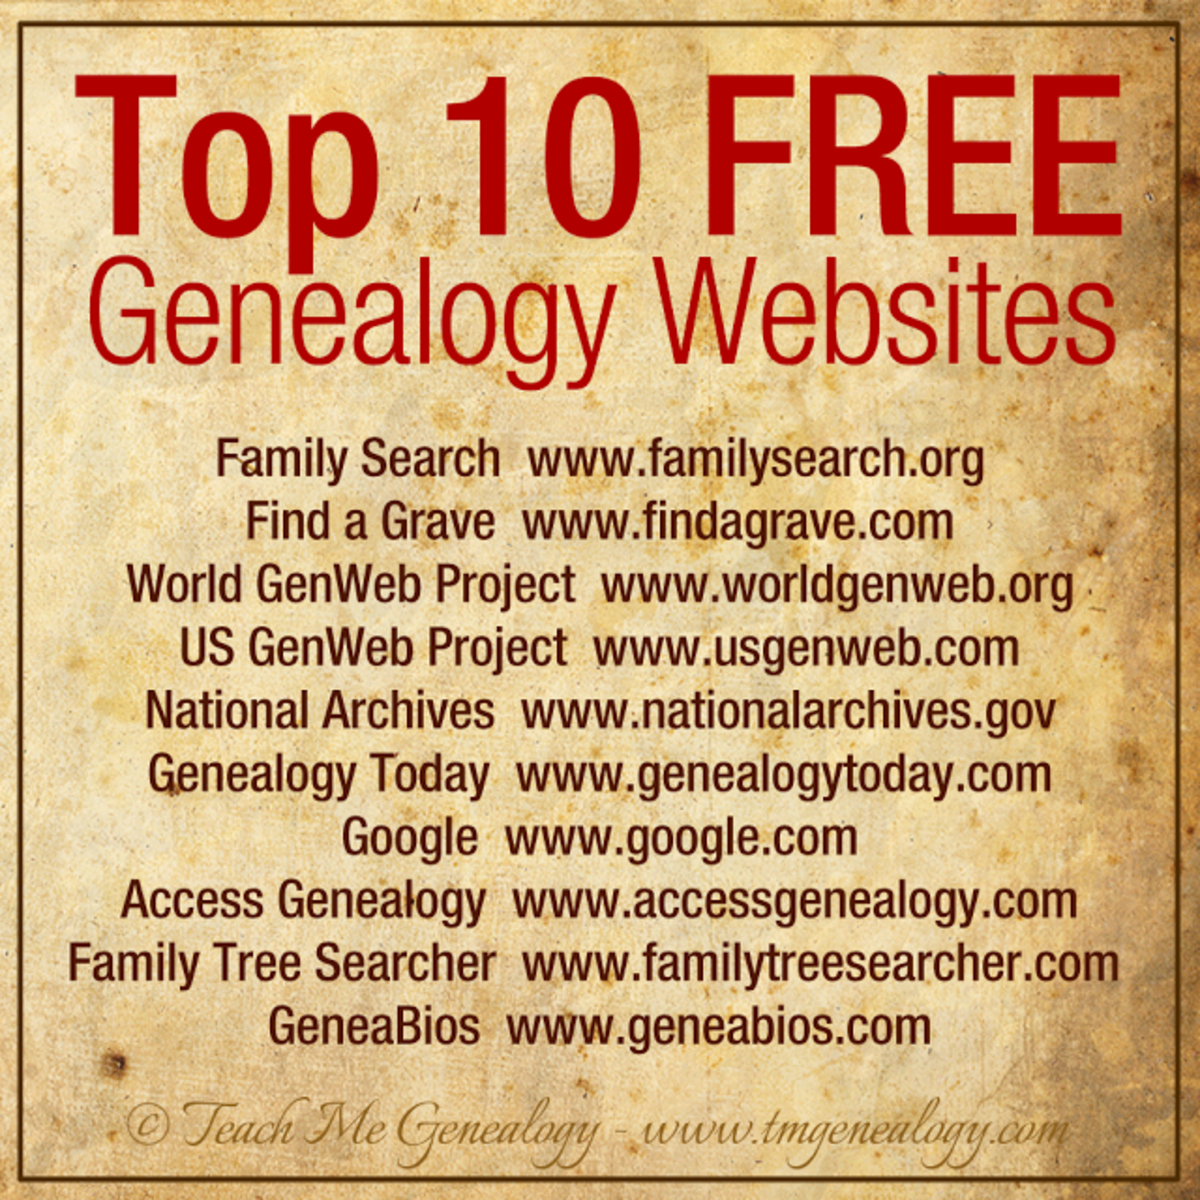 how-genealogy-affects-wellbeing-in-older-people